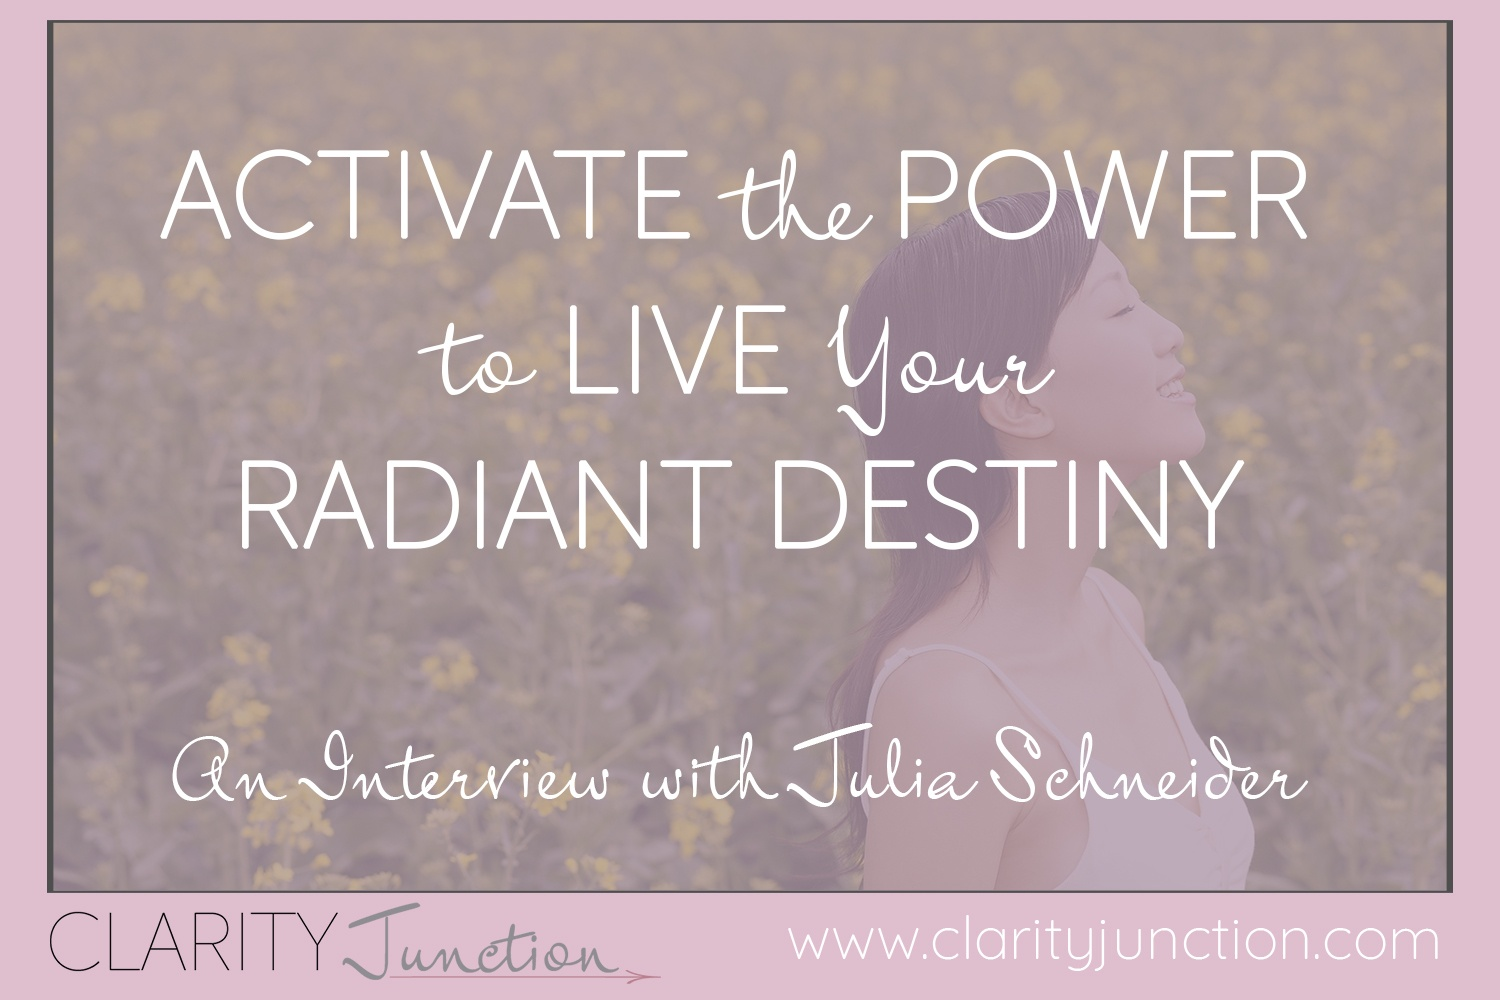 Activate the Power to Live Your Radiant Destiny